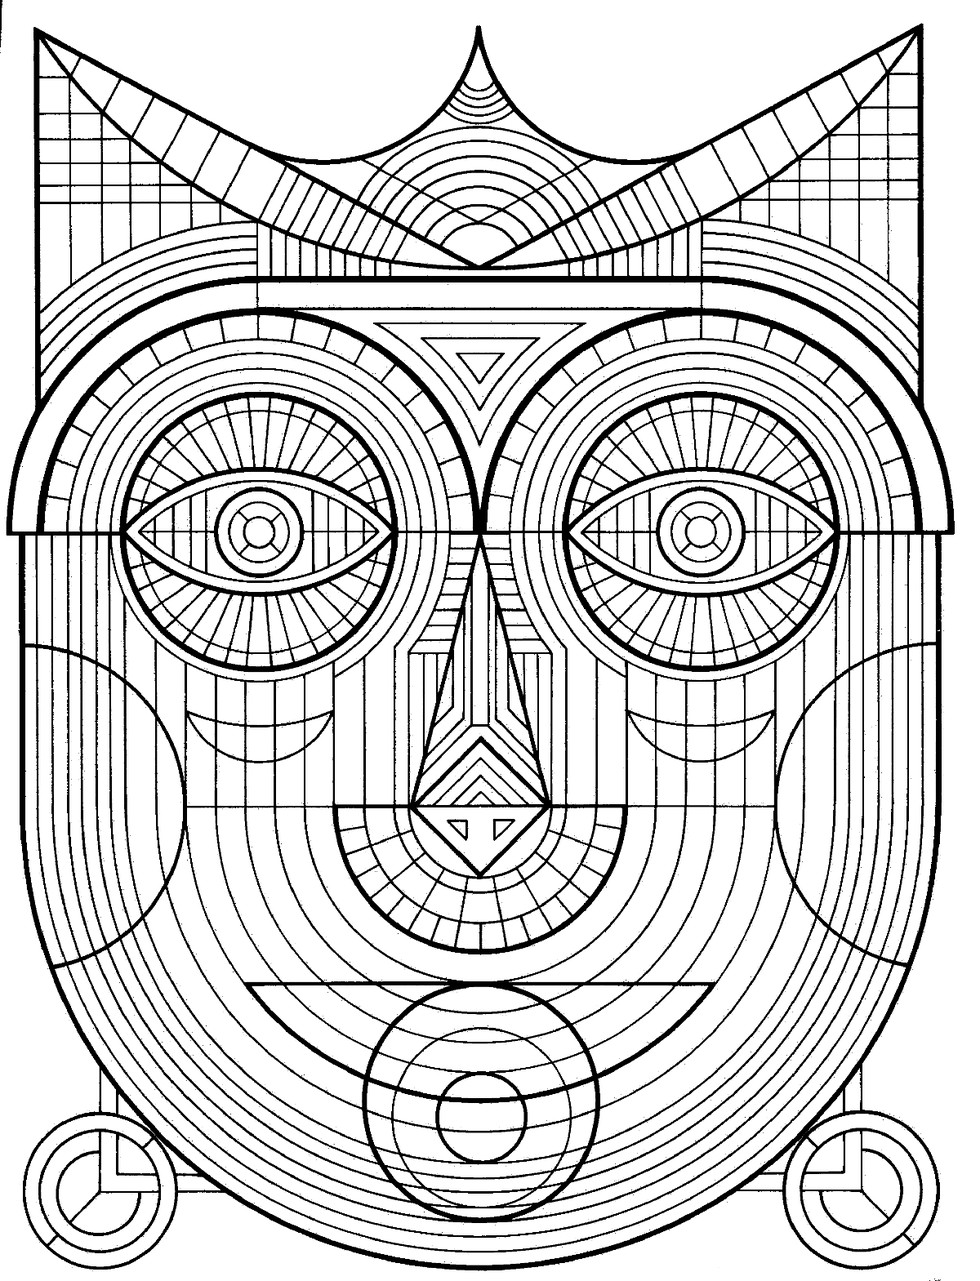 3d coloring pages - These Printable Mandala And Abstract Coloring Pages Relieve Stress And Help You Meditate